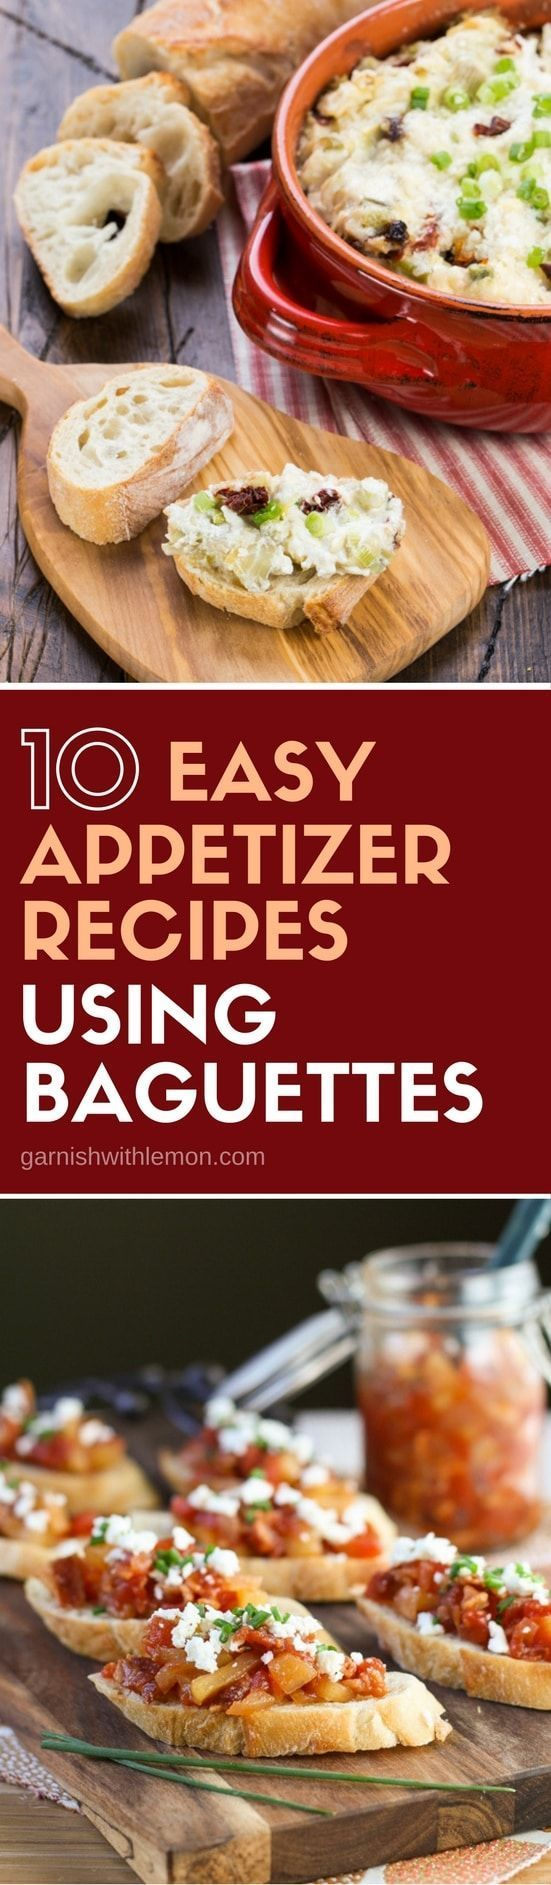 Need an appetizer for your next party? Grab a baguette at the store and whip up any one of these 10 Easy Appetizer Recipes using Baguettes! #appetizers #baguettes #recipe #makeaheadappetizers